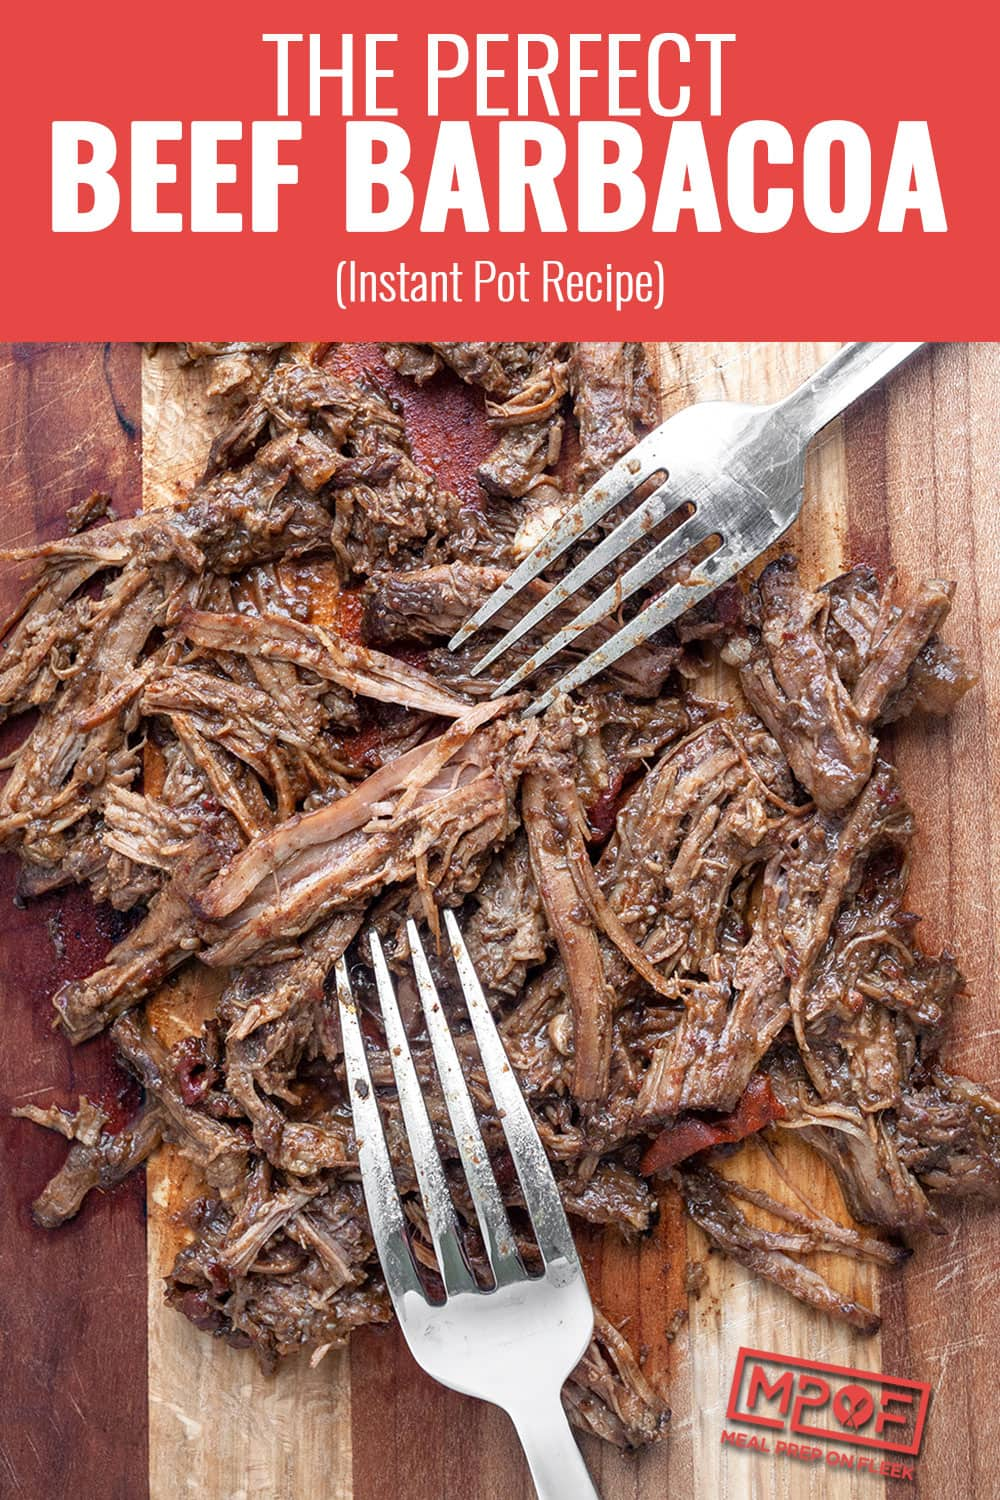 Instant Pot Beef Barbacoa Recipe